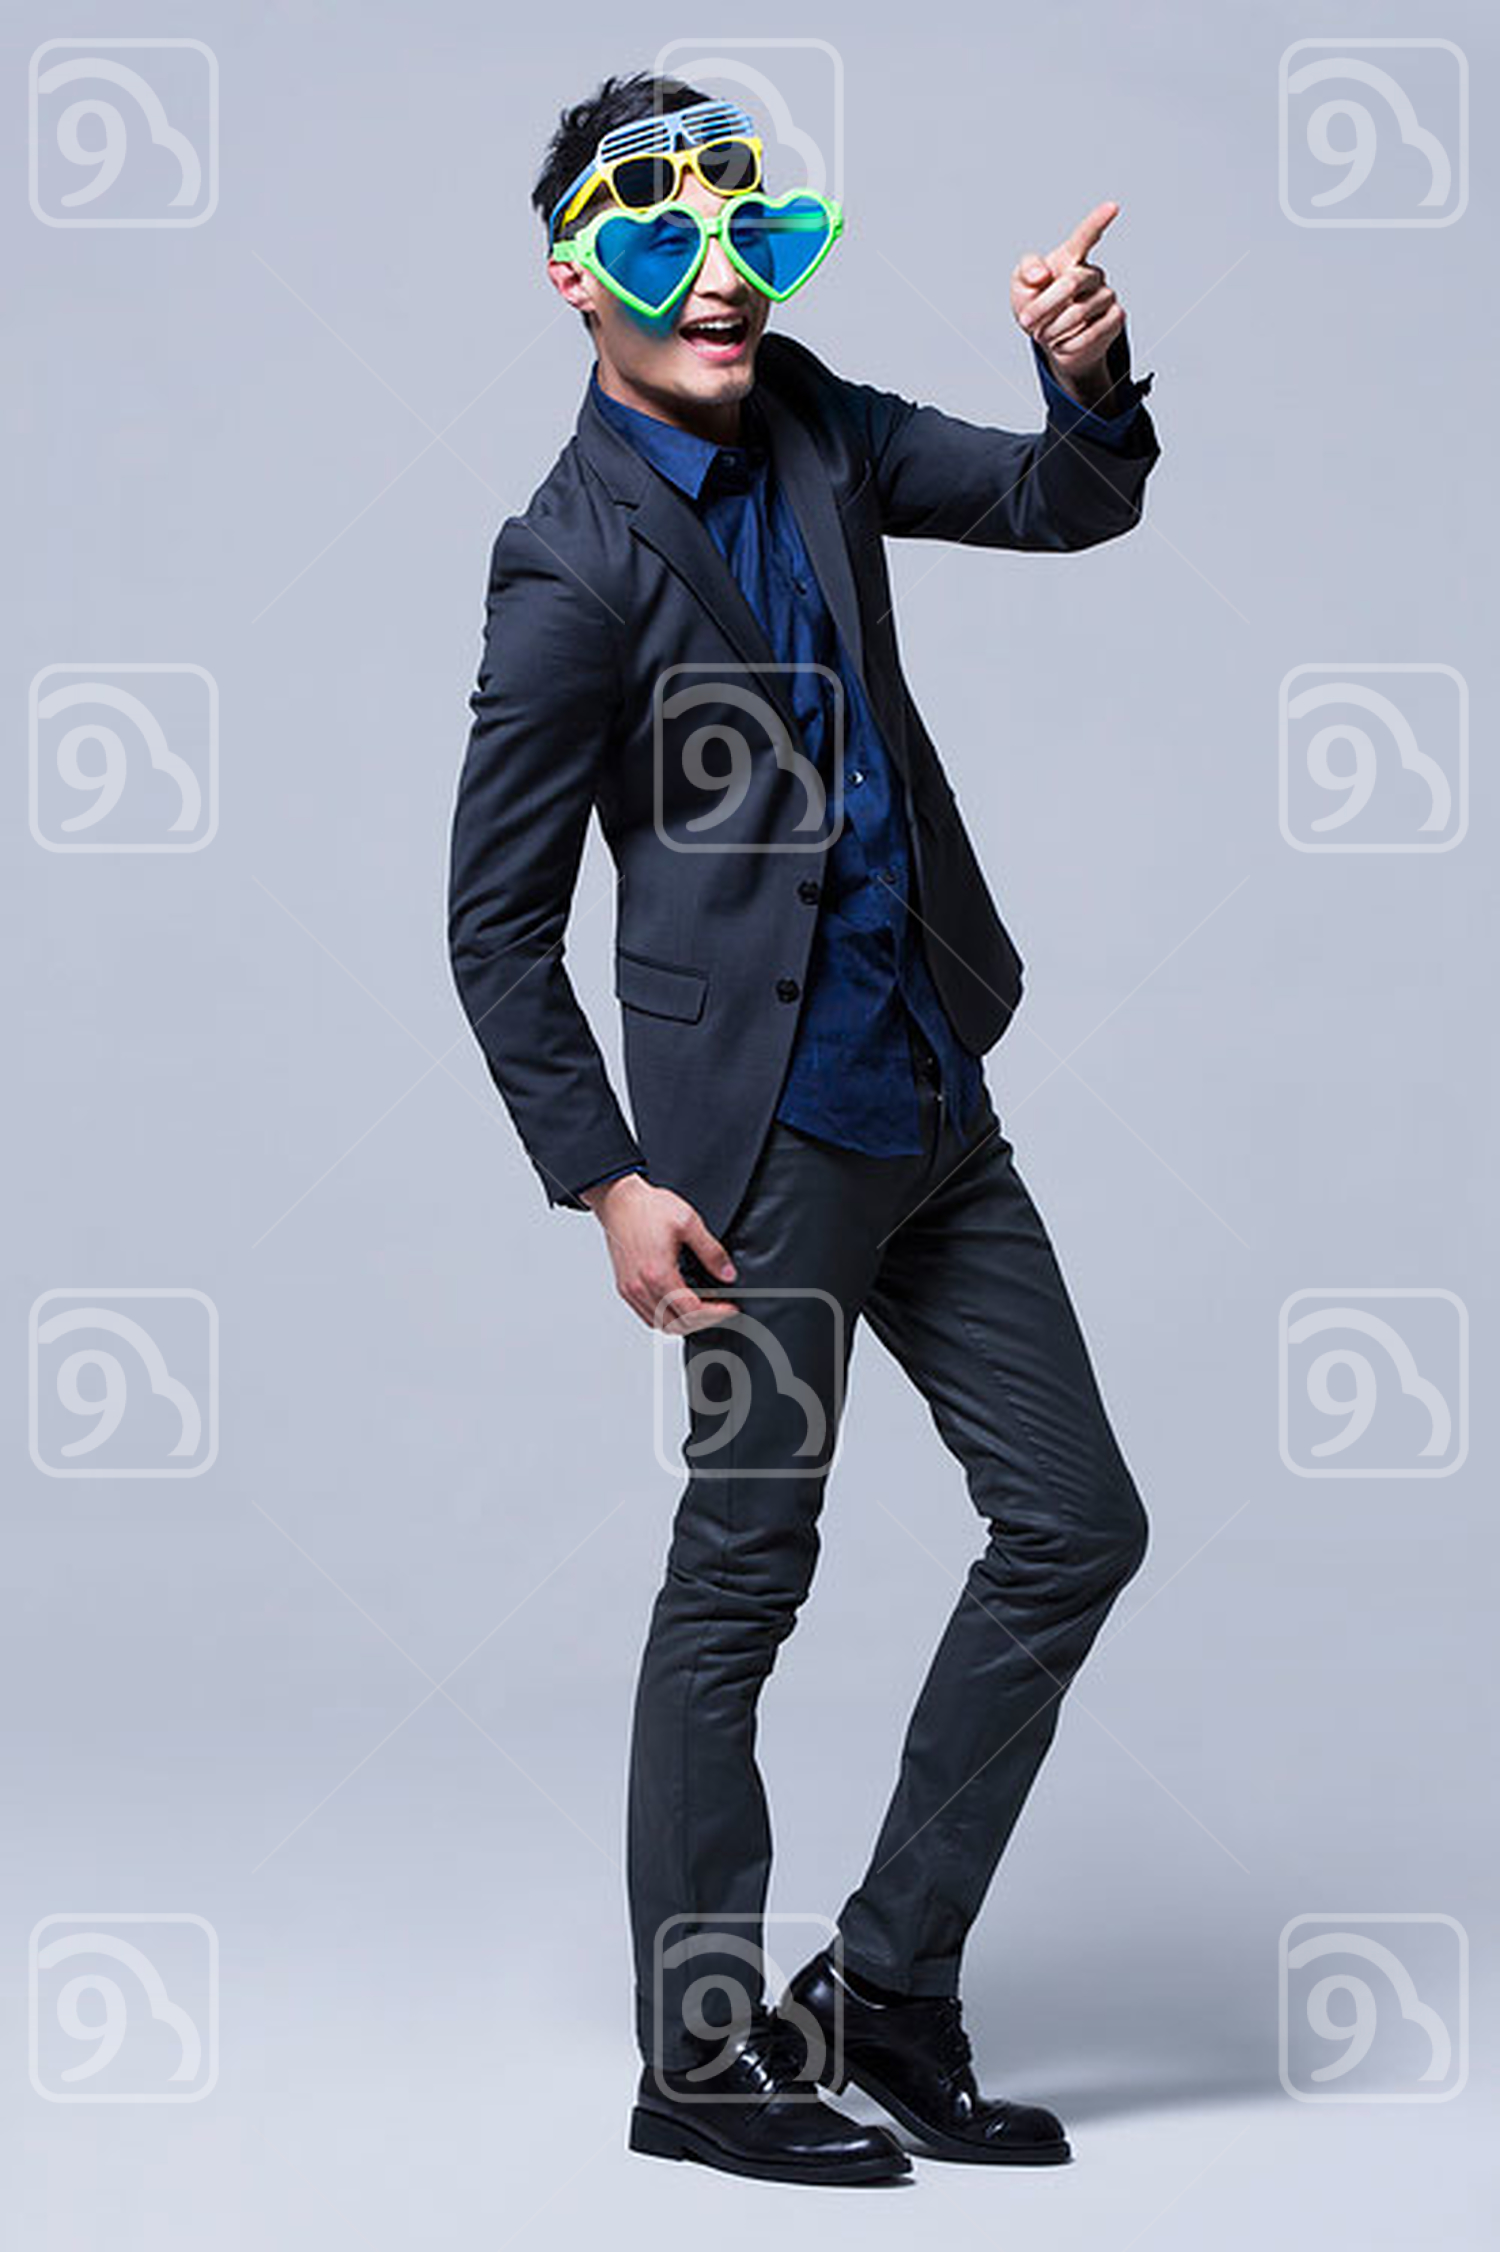 Hip young Chinese man wearing multiple pairs of sunglasses